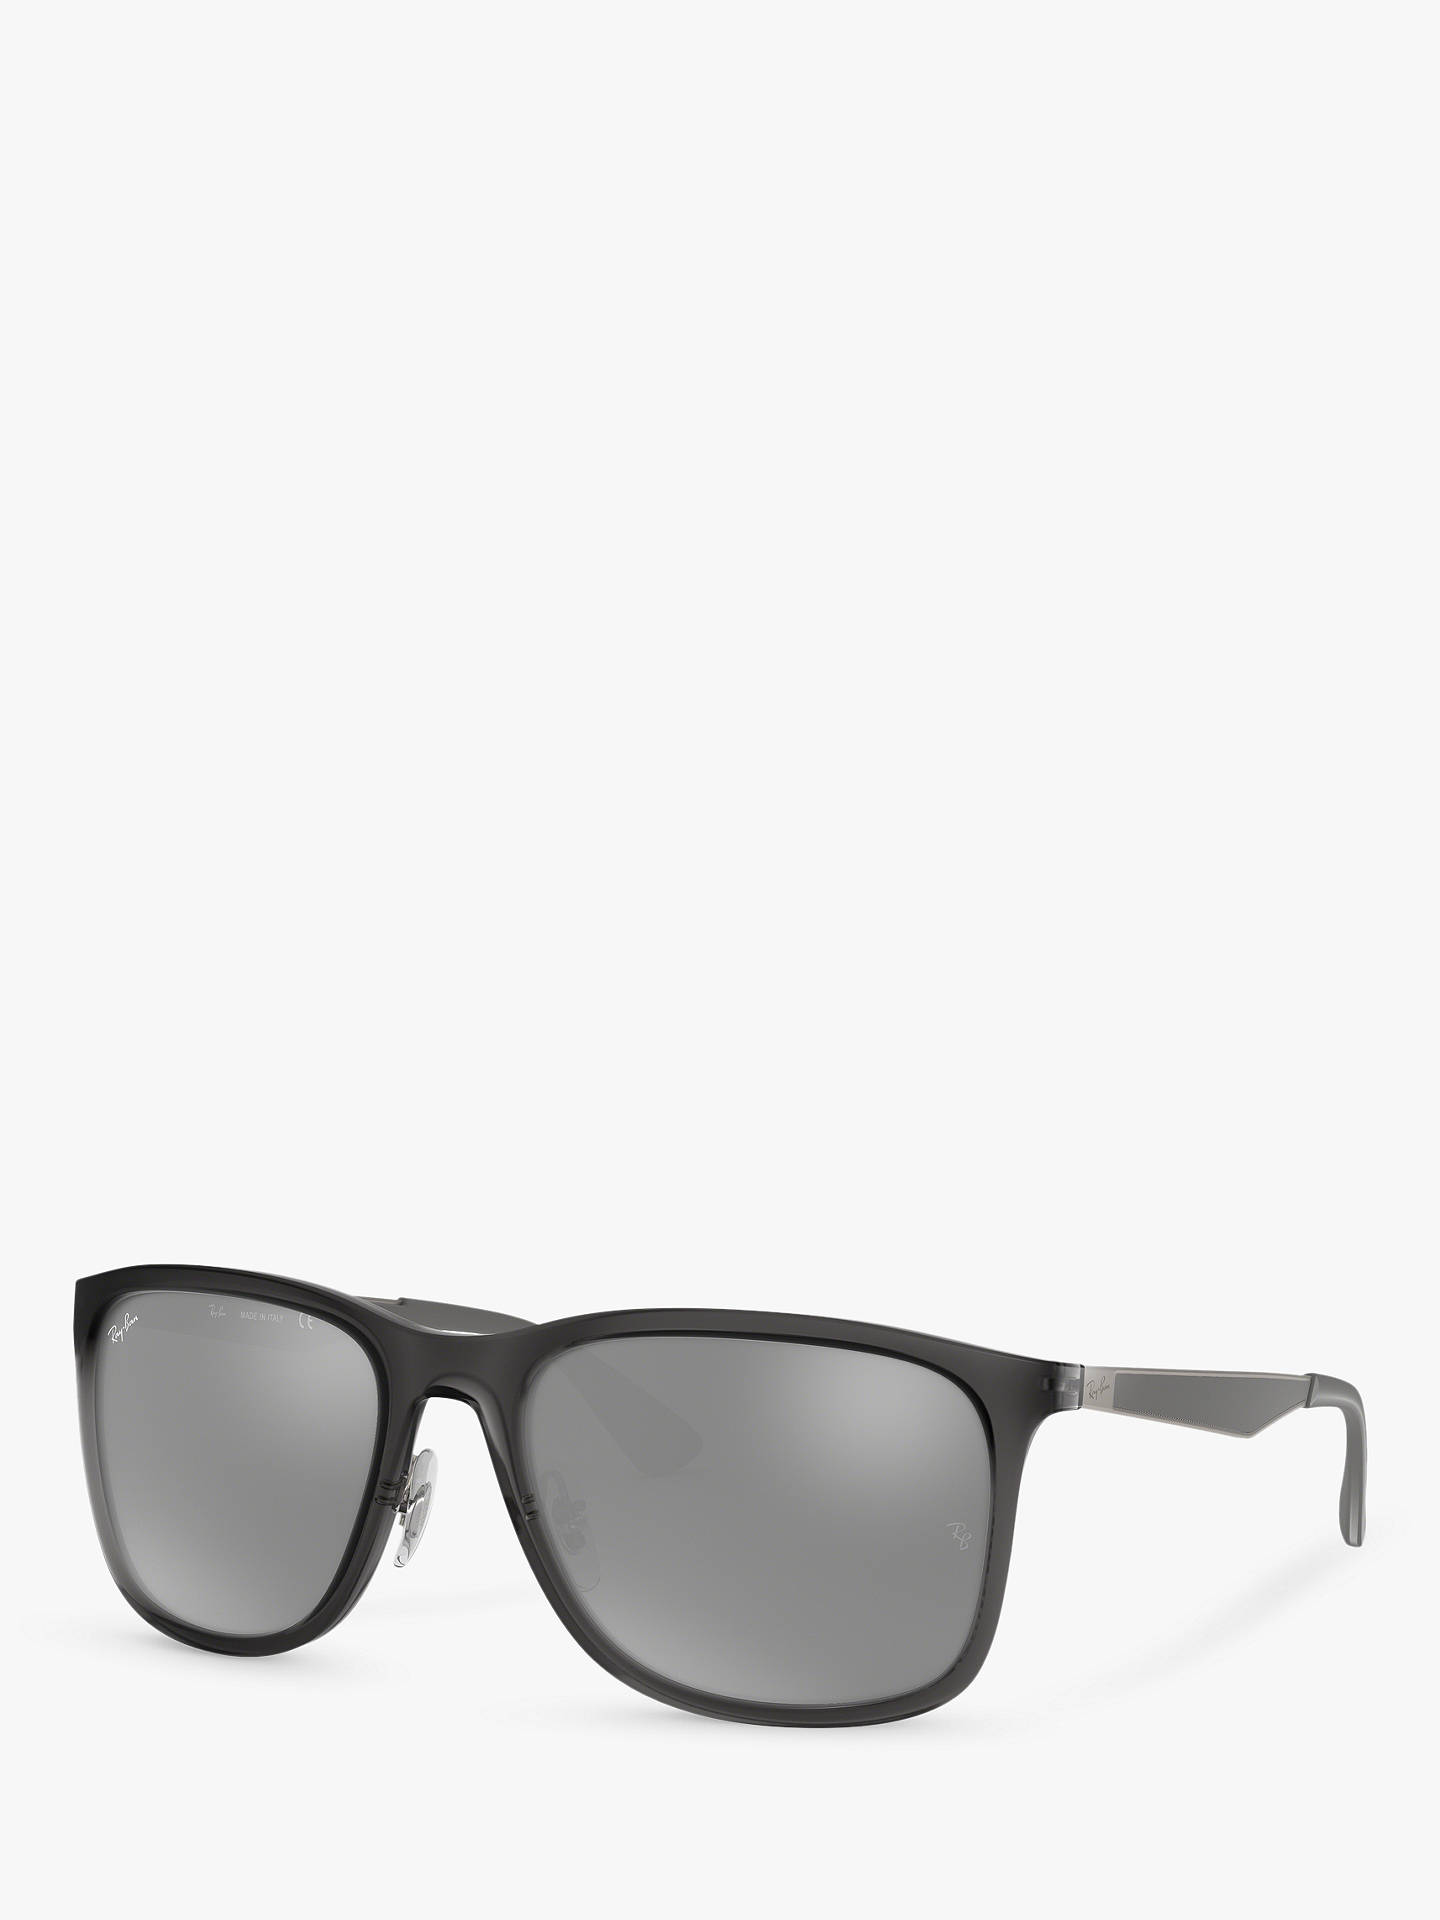 0769544f69 BuyRay-Ban RB4313 Men s Square Sunglasses